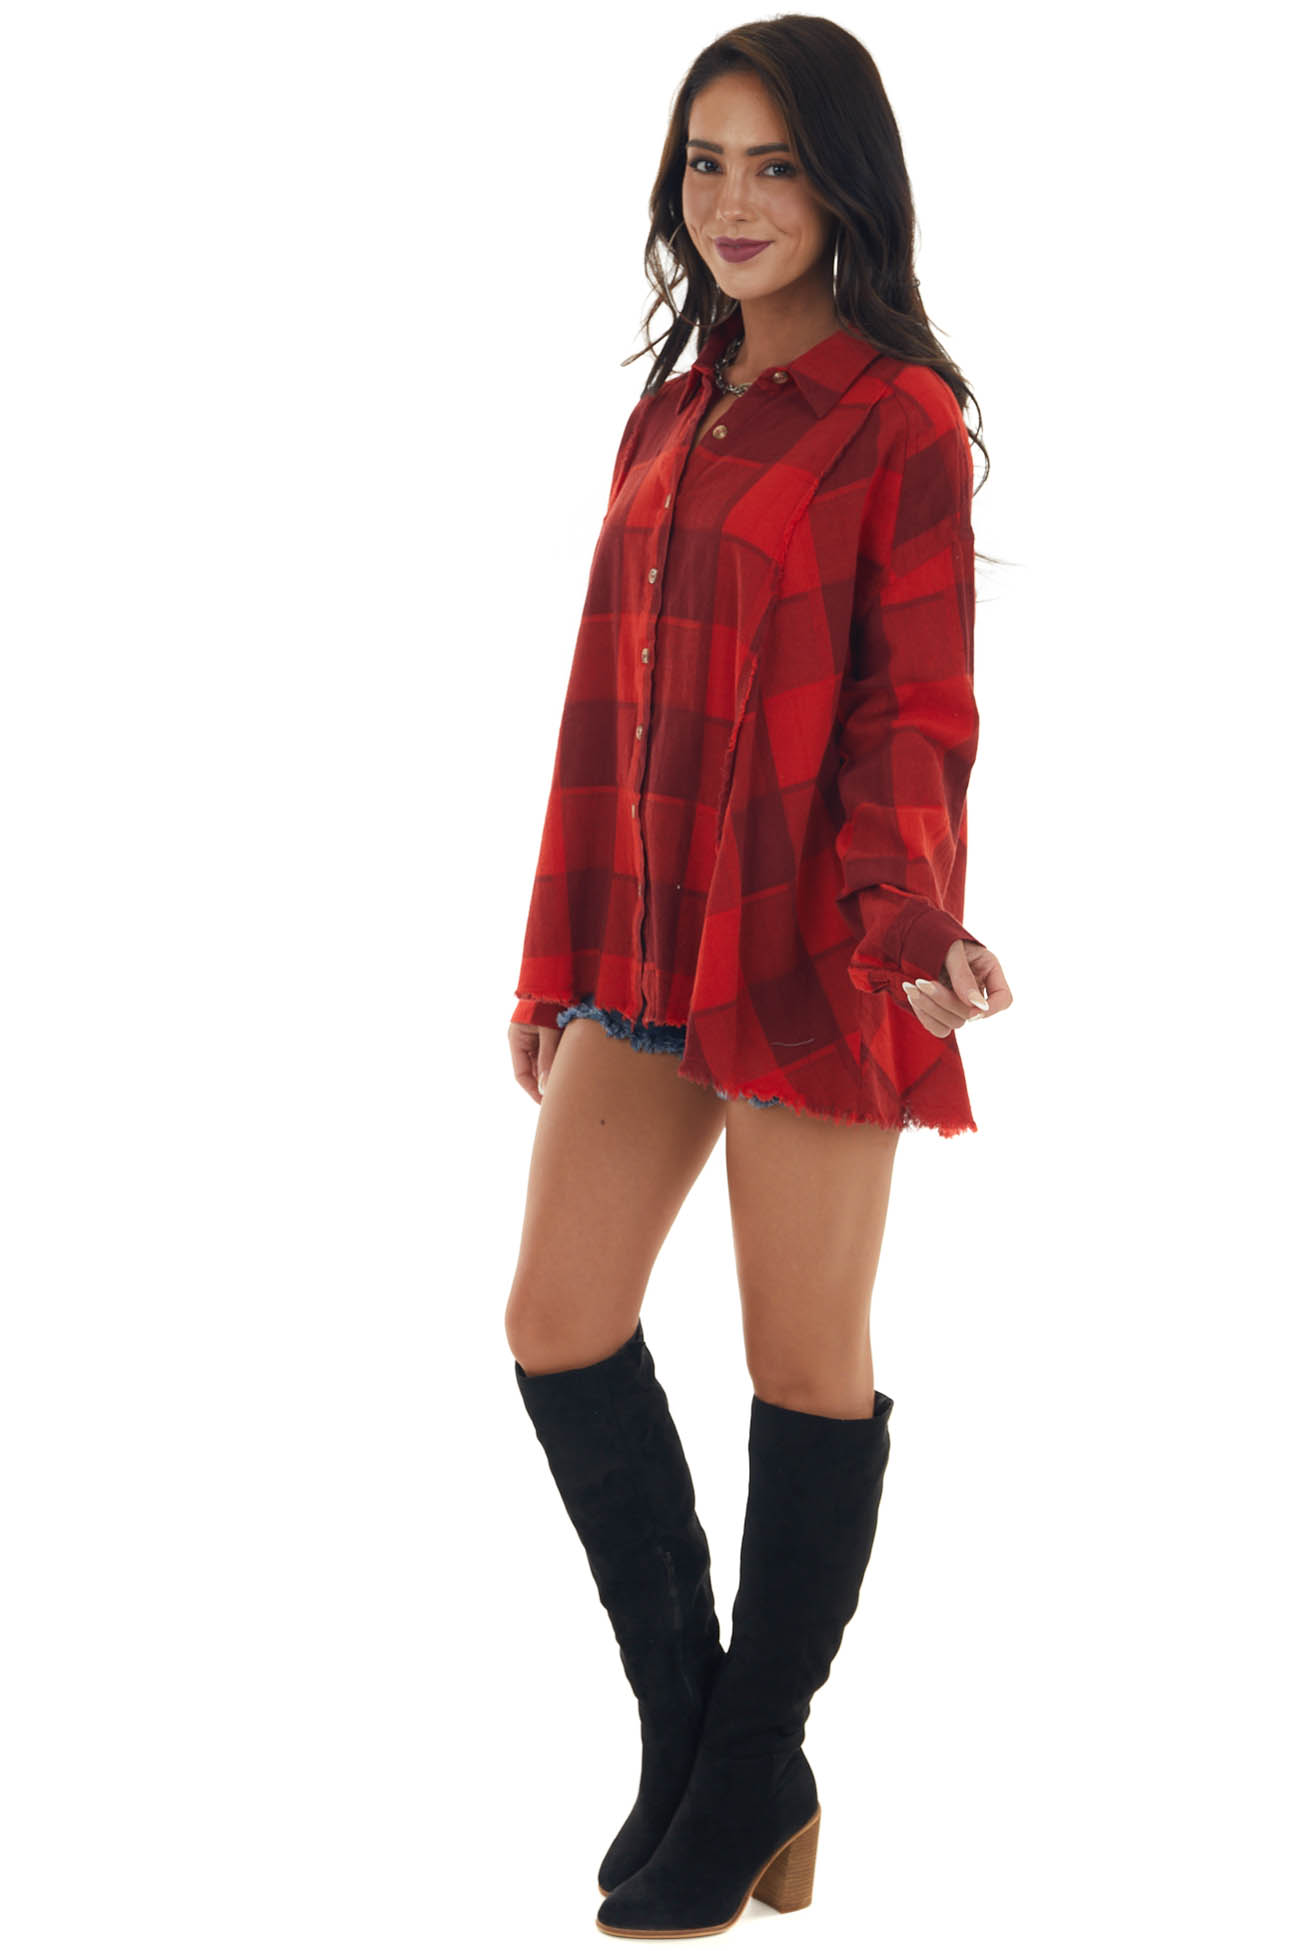 Candy Apple Red Plaid Button Up Frayed Top